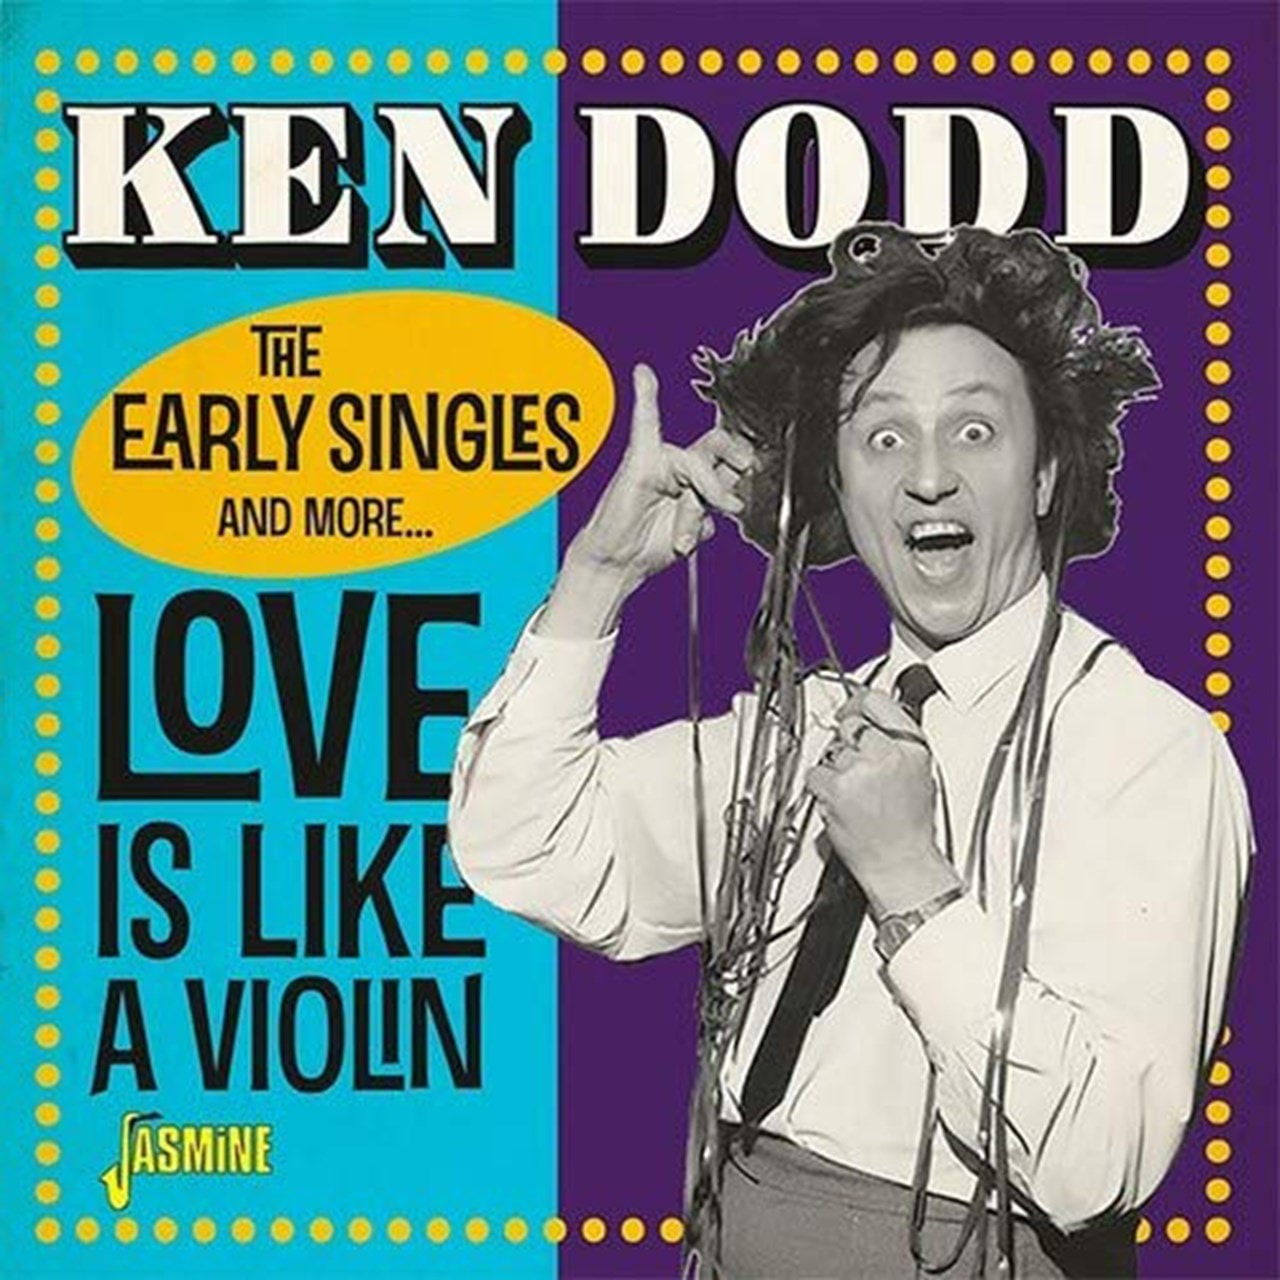 Love Is Like a Violin - The Early Singles and More... - 1